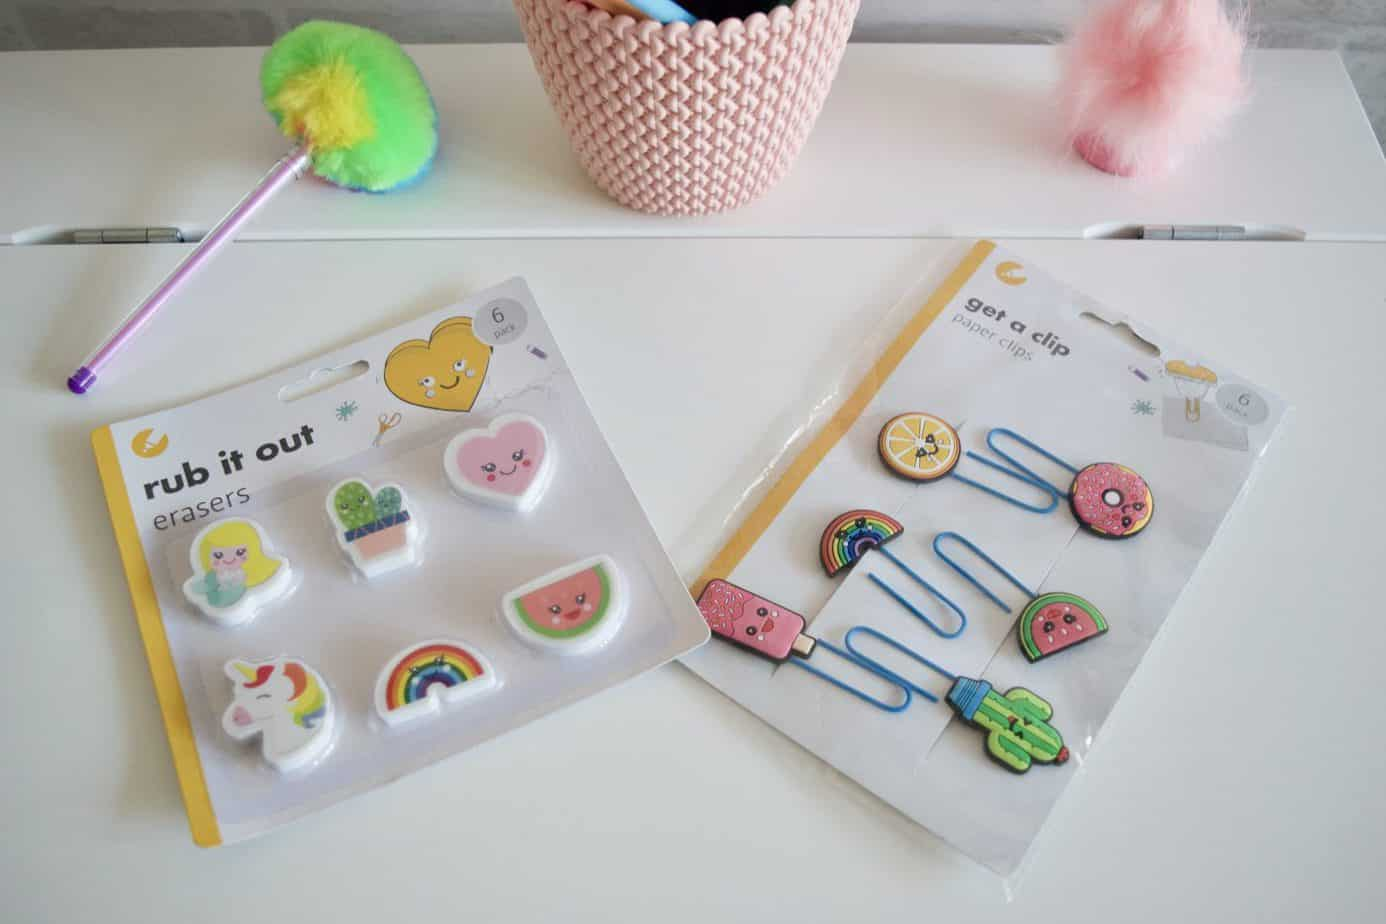 Pack of 6 erasers and pack of 6 paper clips both from Poundland